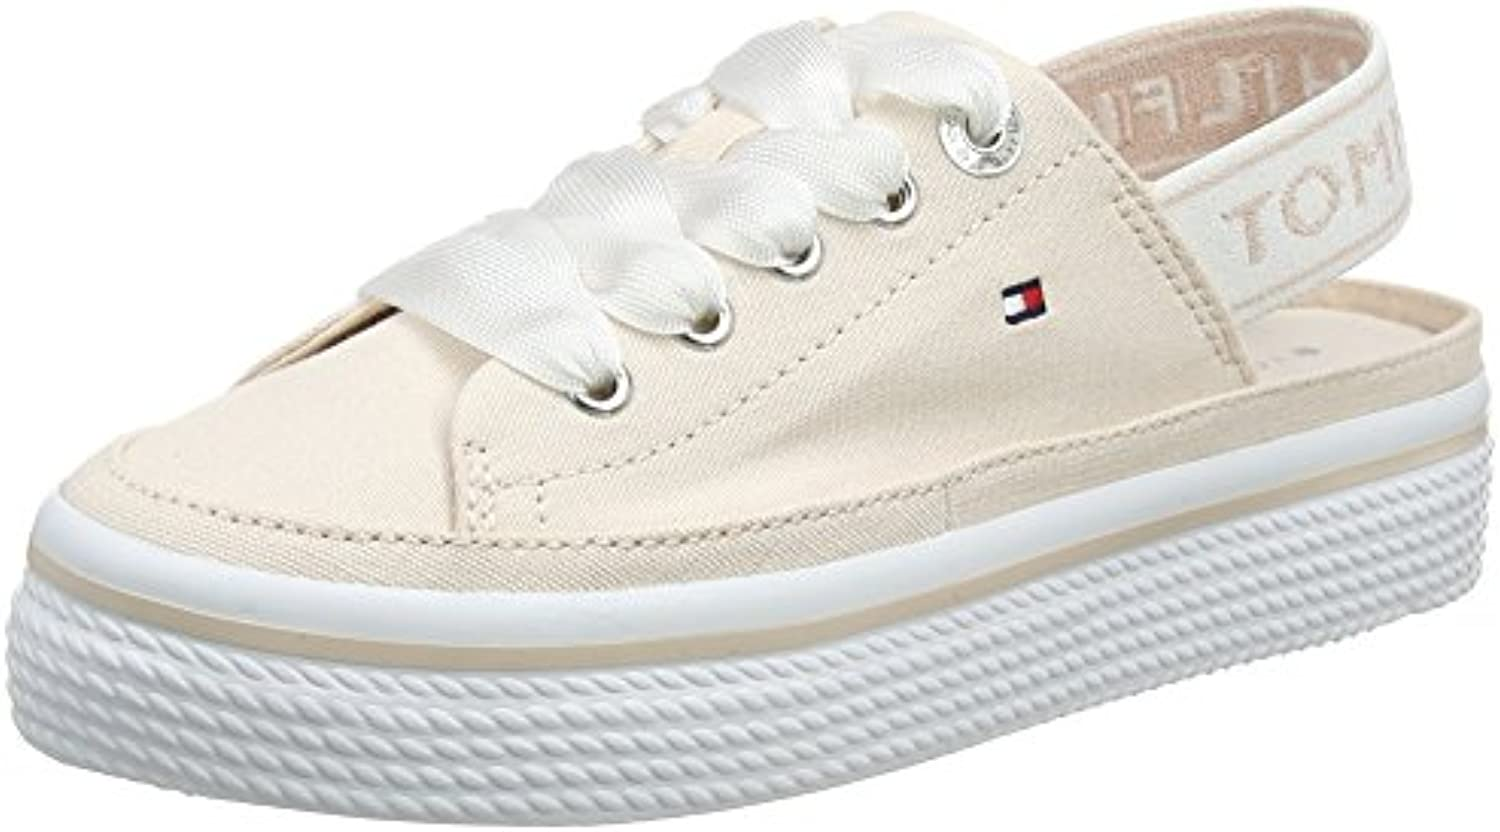 new concept 36c5f 08b97 Tommy Hilfiger Women s Pastel Sling Back Flatform Low-Top Sneakers, Silver  Silver Silver Peony